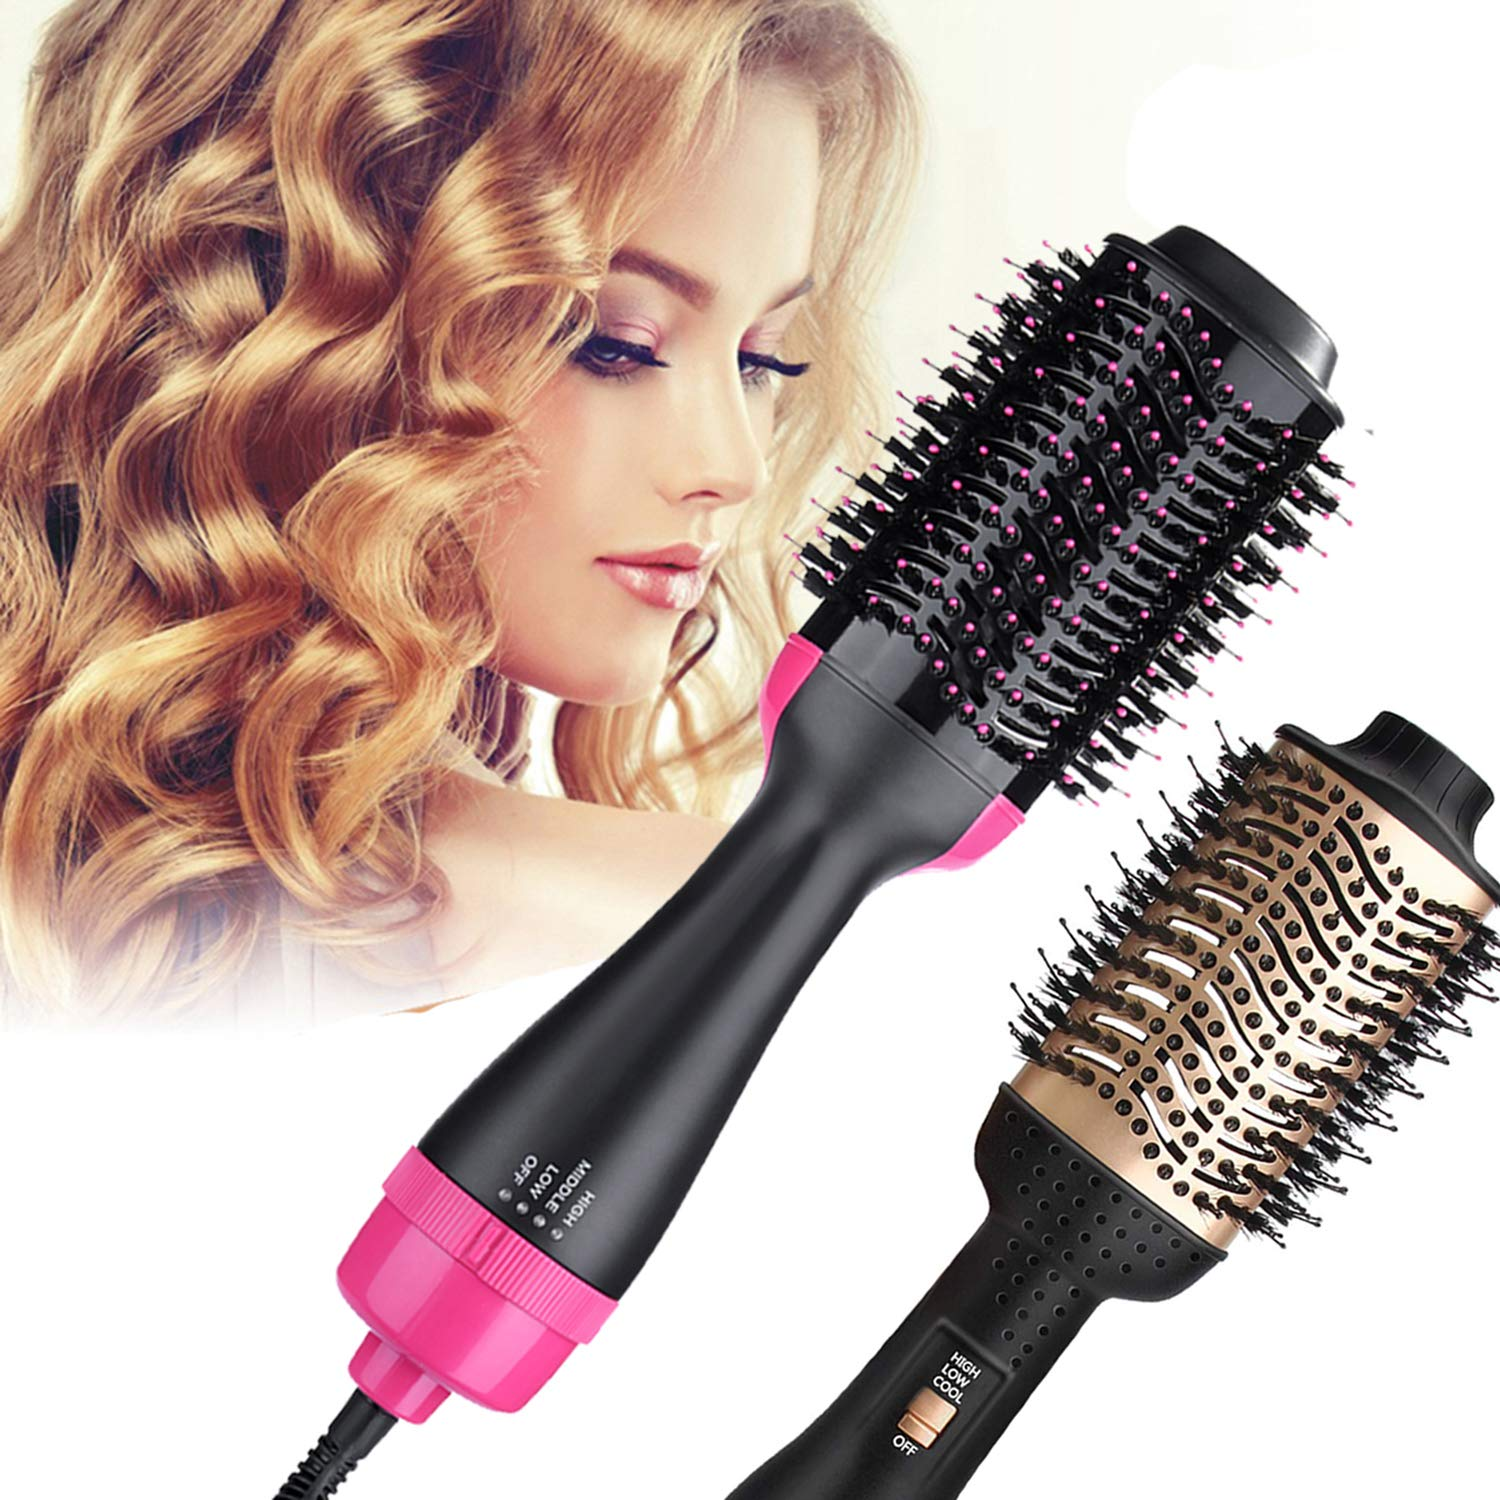 B.Star One Step Hair Dryer and Styler Volumizer Oval Hot Air Brush Hair Dryer Brush Dry Straighten Curl Smooth Frizz with Ionic Technology